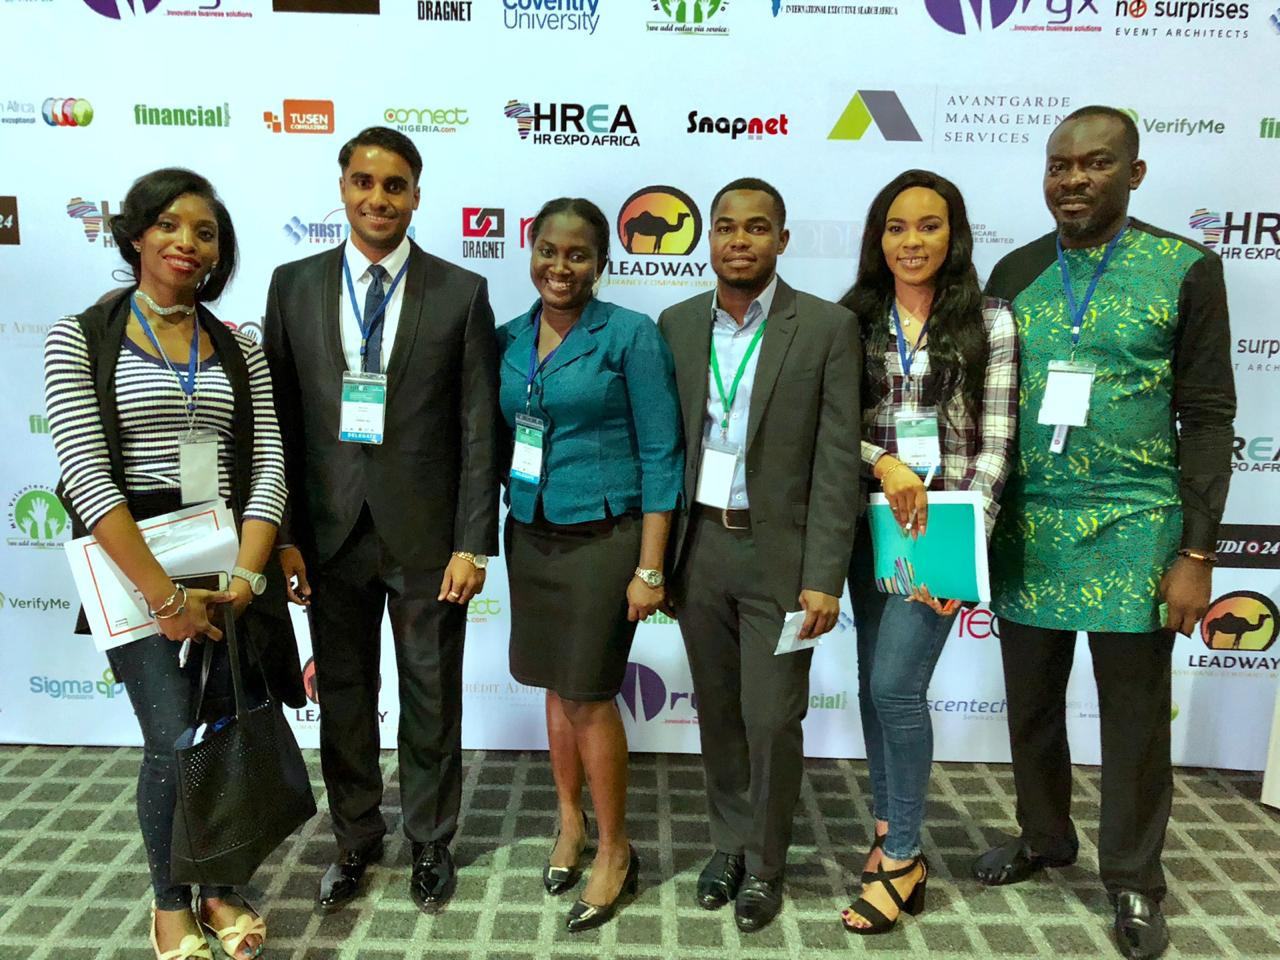 The Delegates at HREA (HR Expo Africa)